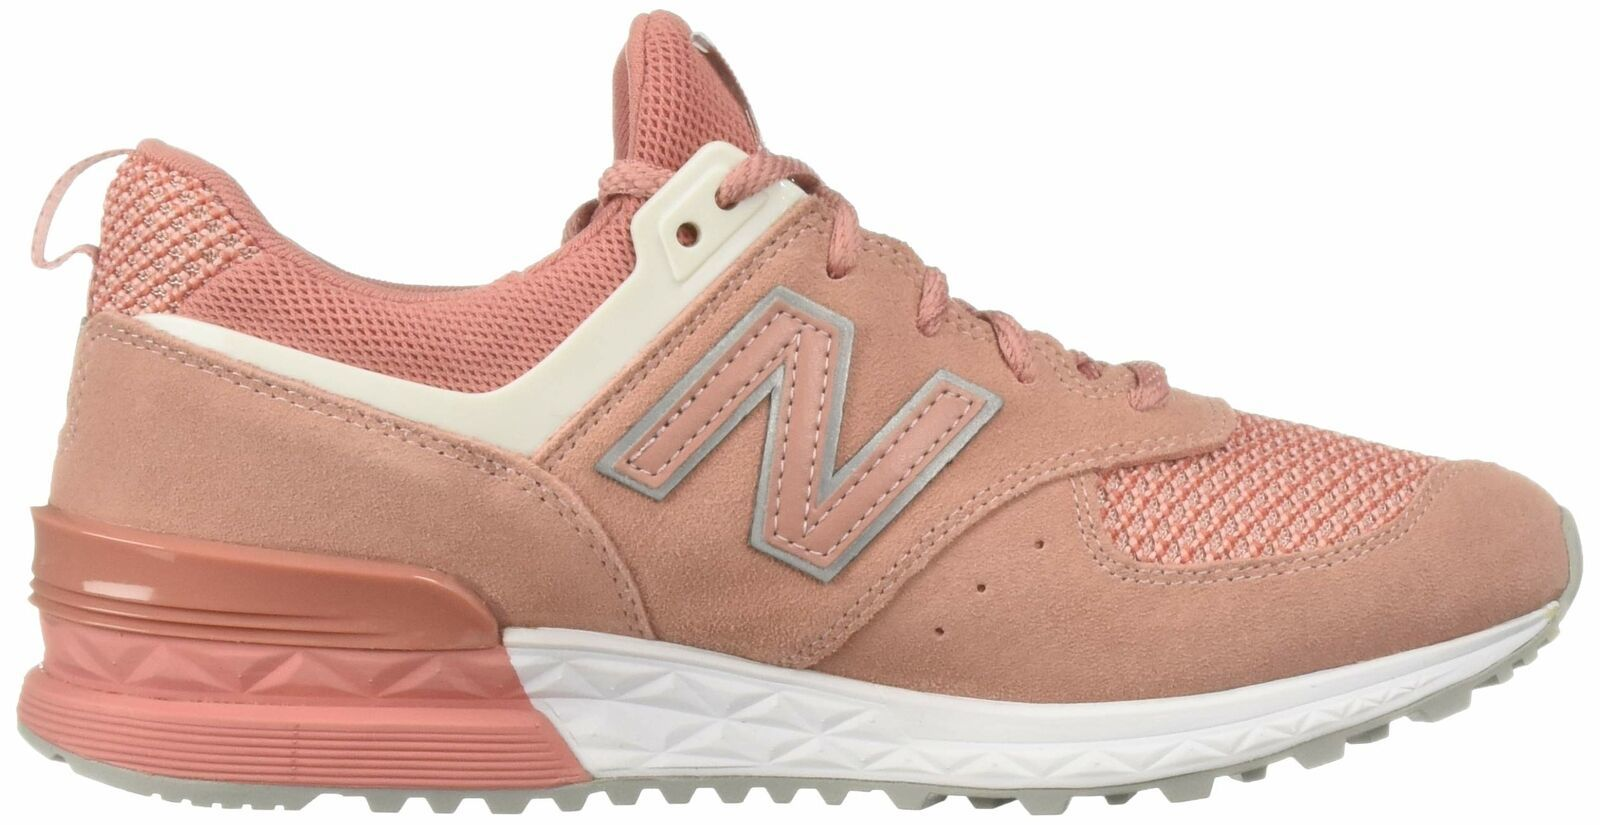 NEW BALANCE MEN'S 574 SPORT SNEAKER DUSTED PEA 9 M US image 6